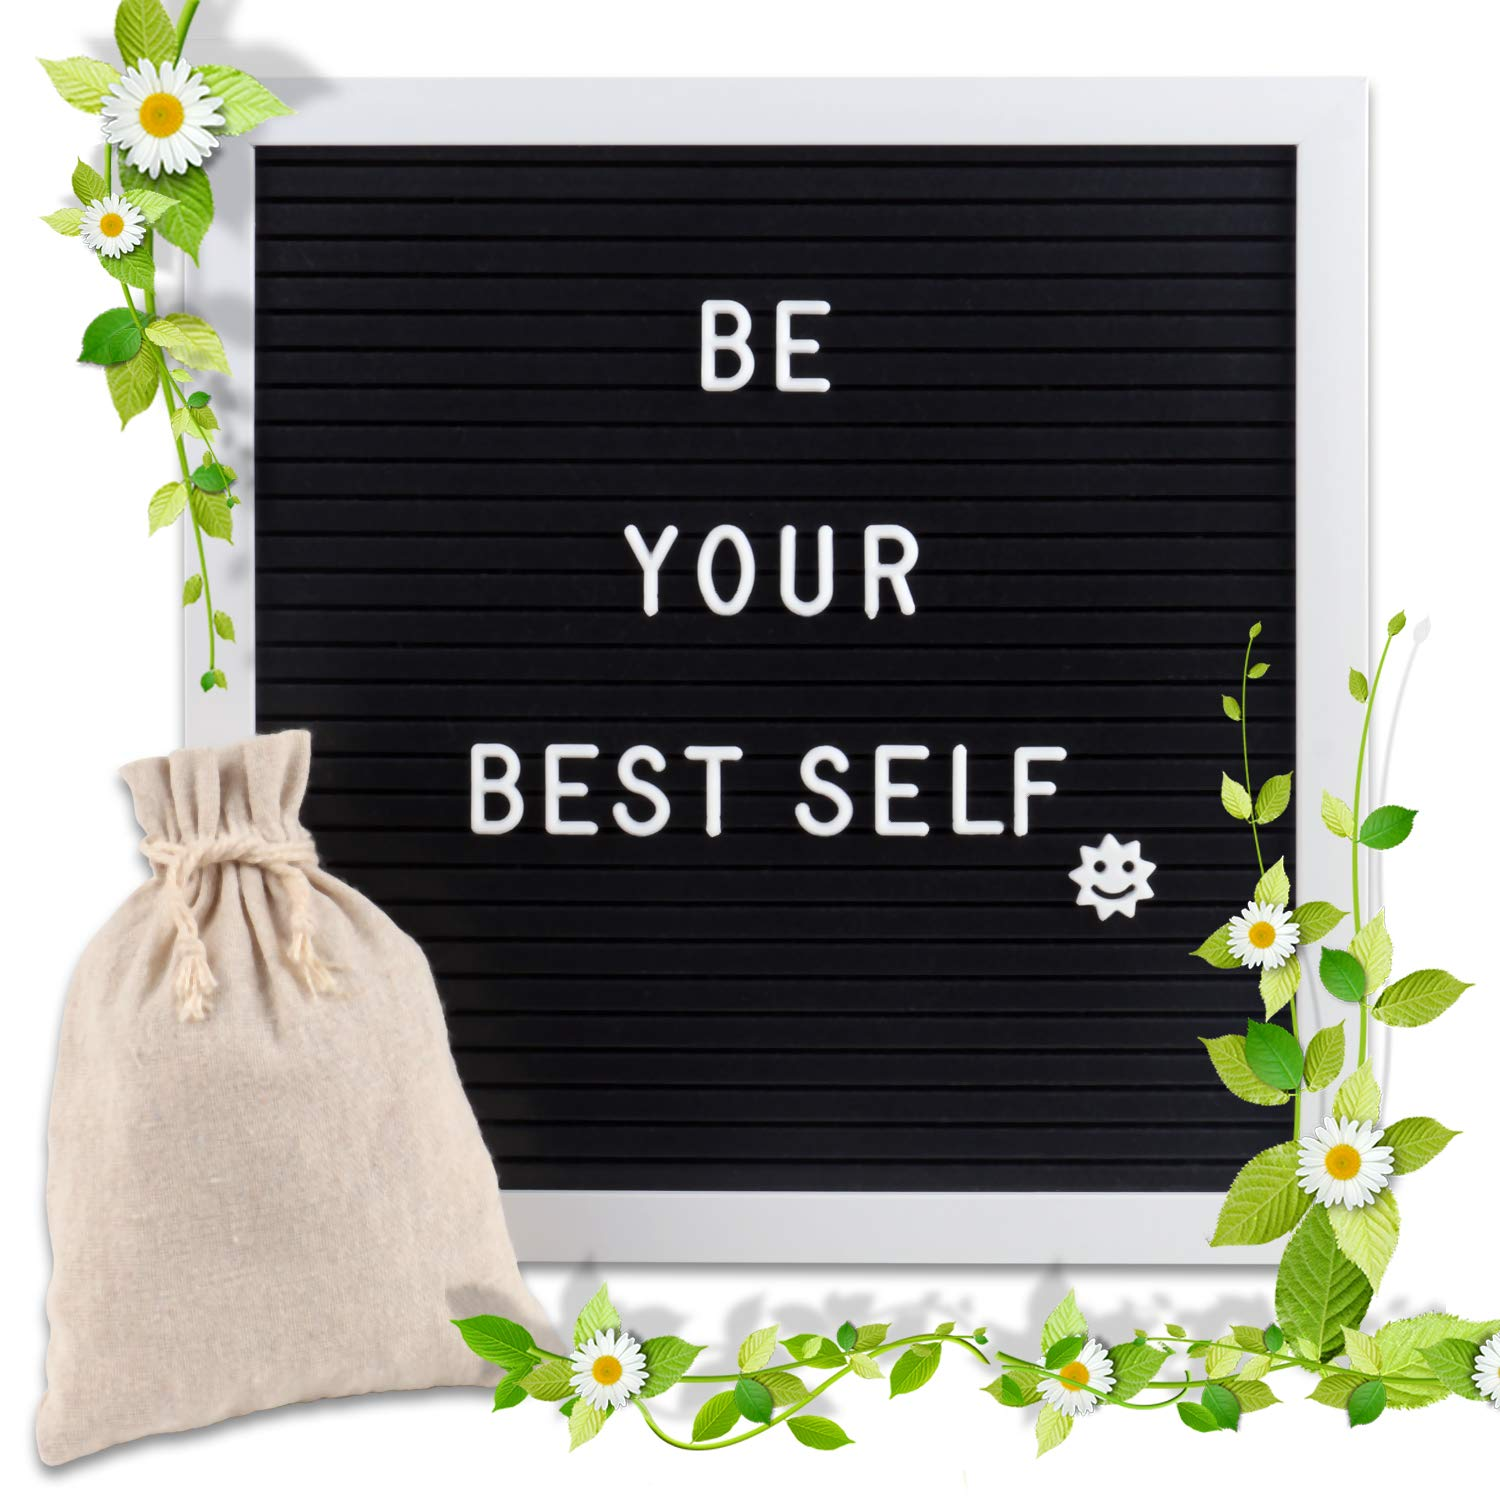 Changeable Letter Board 10x10 inches, Message Sign Board with Canvas Bag, Adjustable Stand,Wall Mount and 340 Letters, Numbers & Symbols(White) WOWGO EE